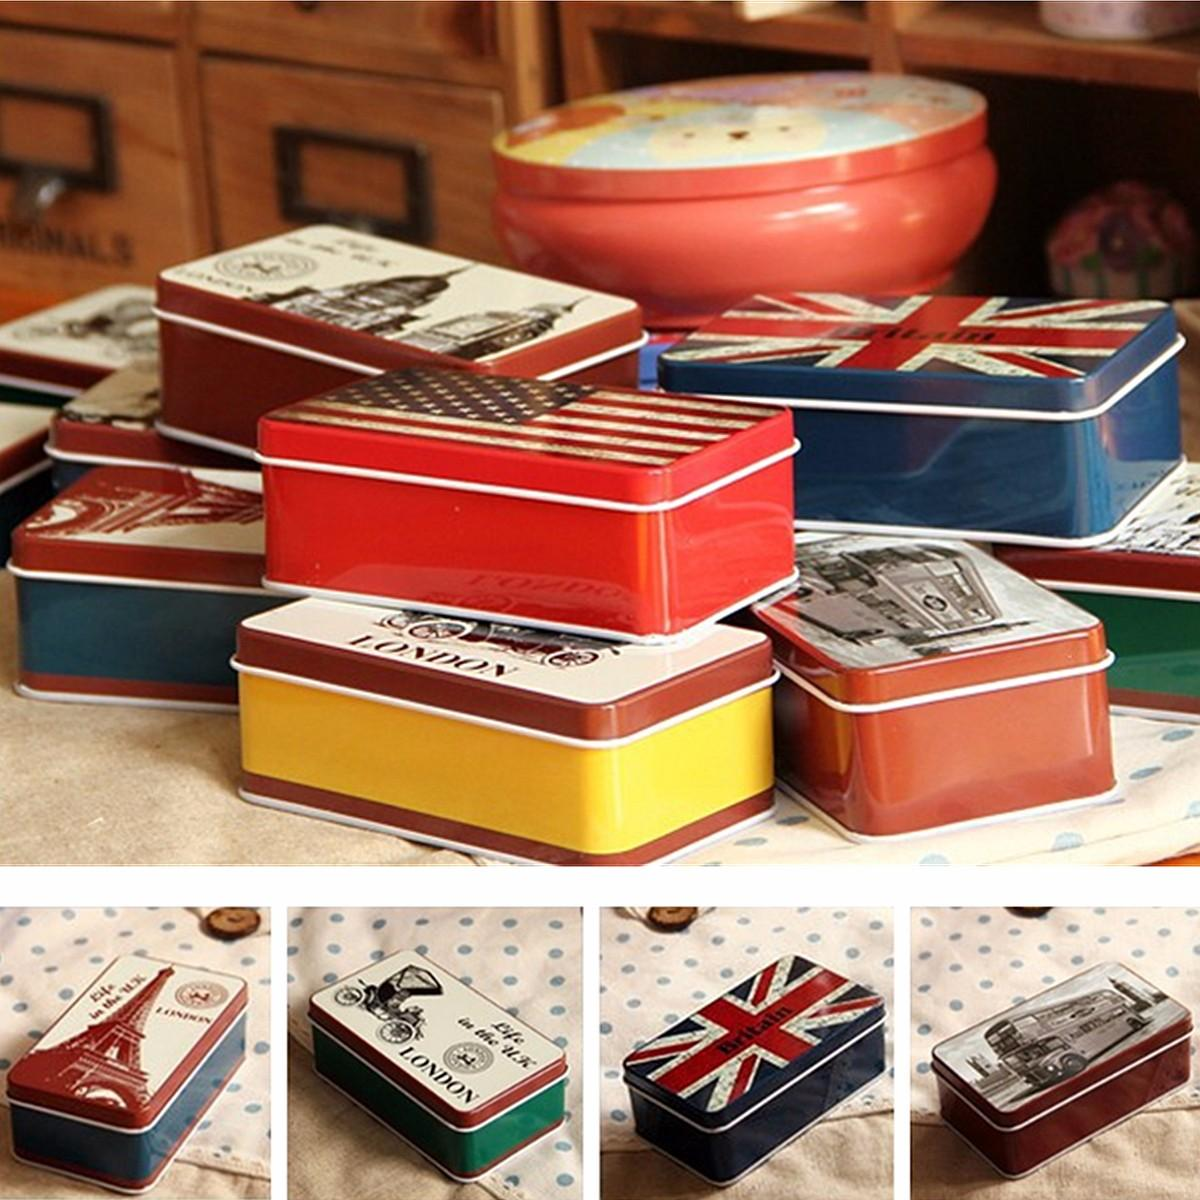 Stationary Boxes Vintage Tin Uk Flag London Big Ben Bus Stationery Jewelry Storage Box